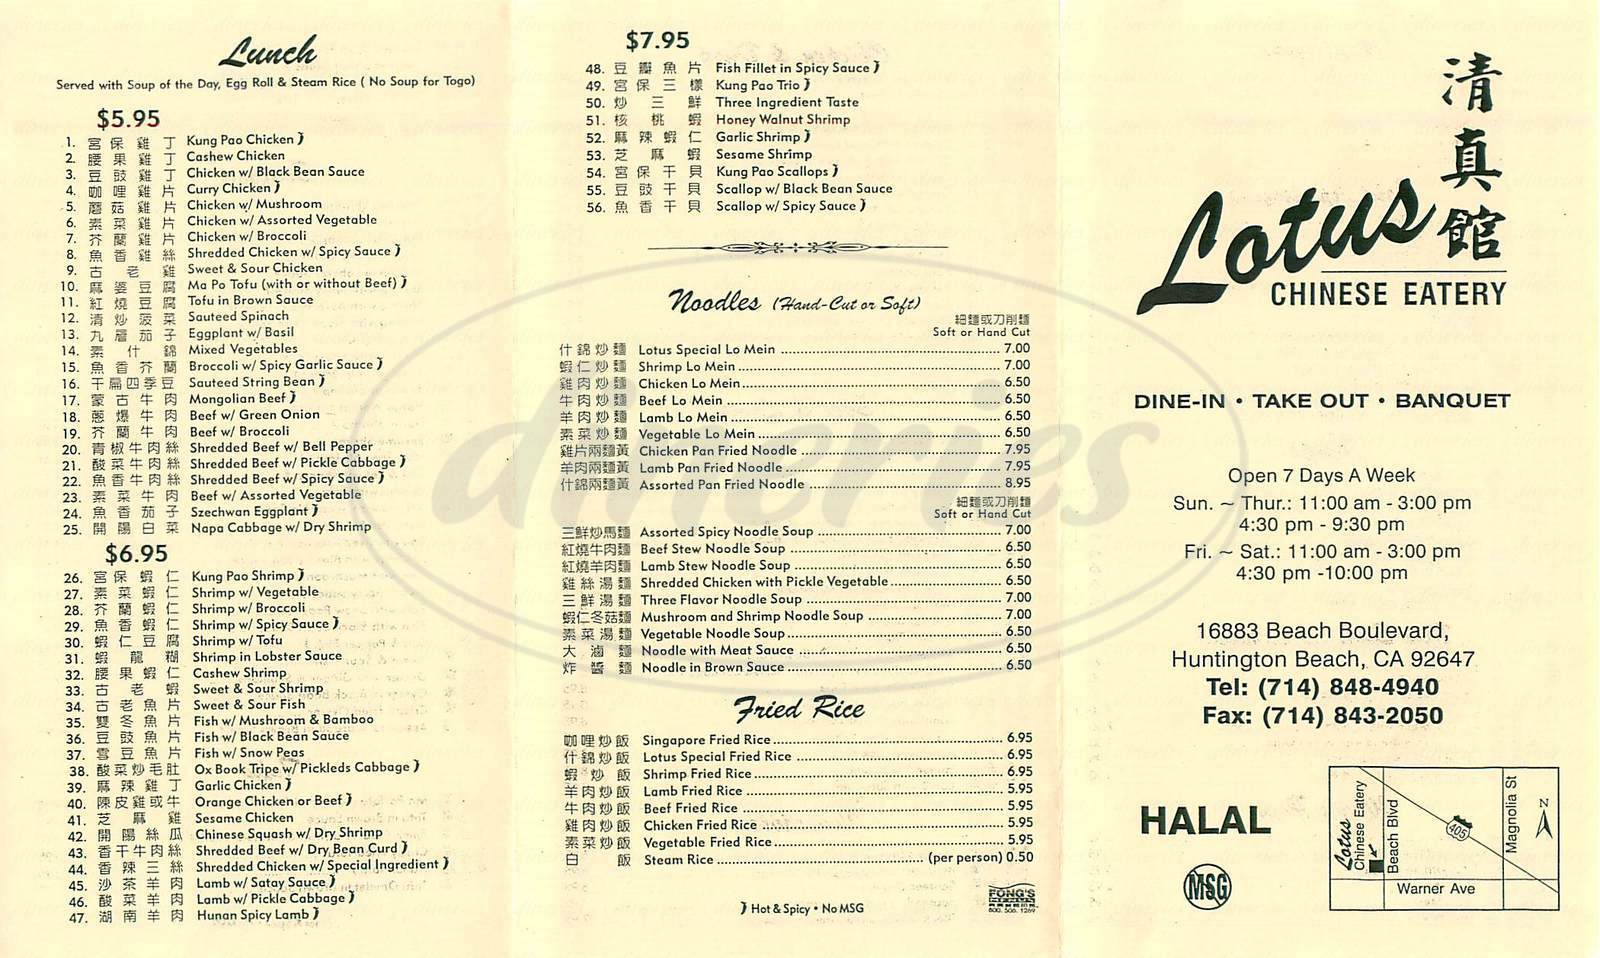 menu for Lotus Chinese Eatery